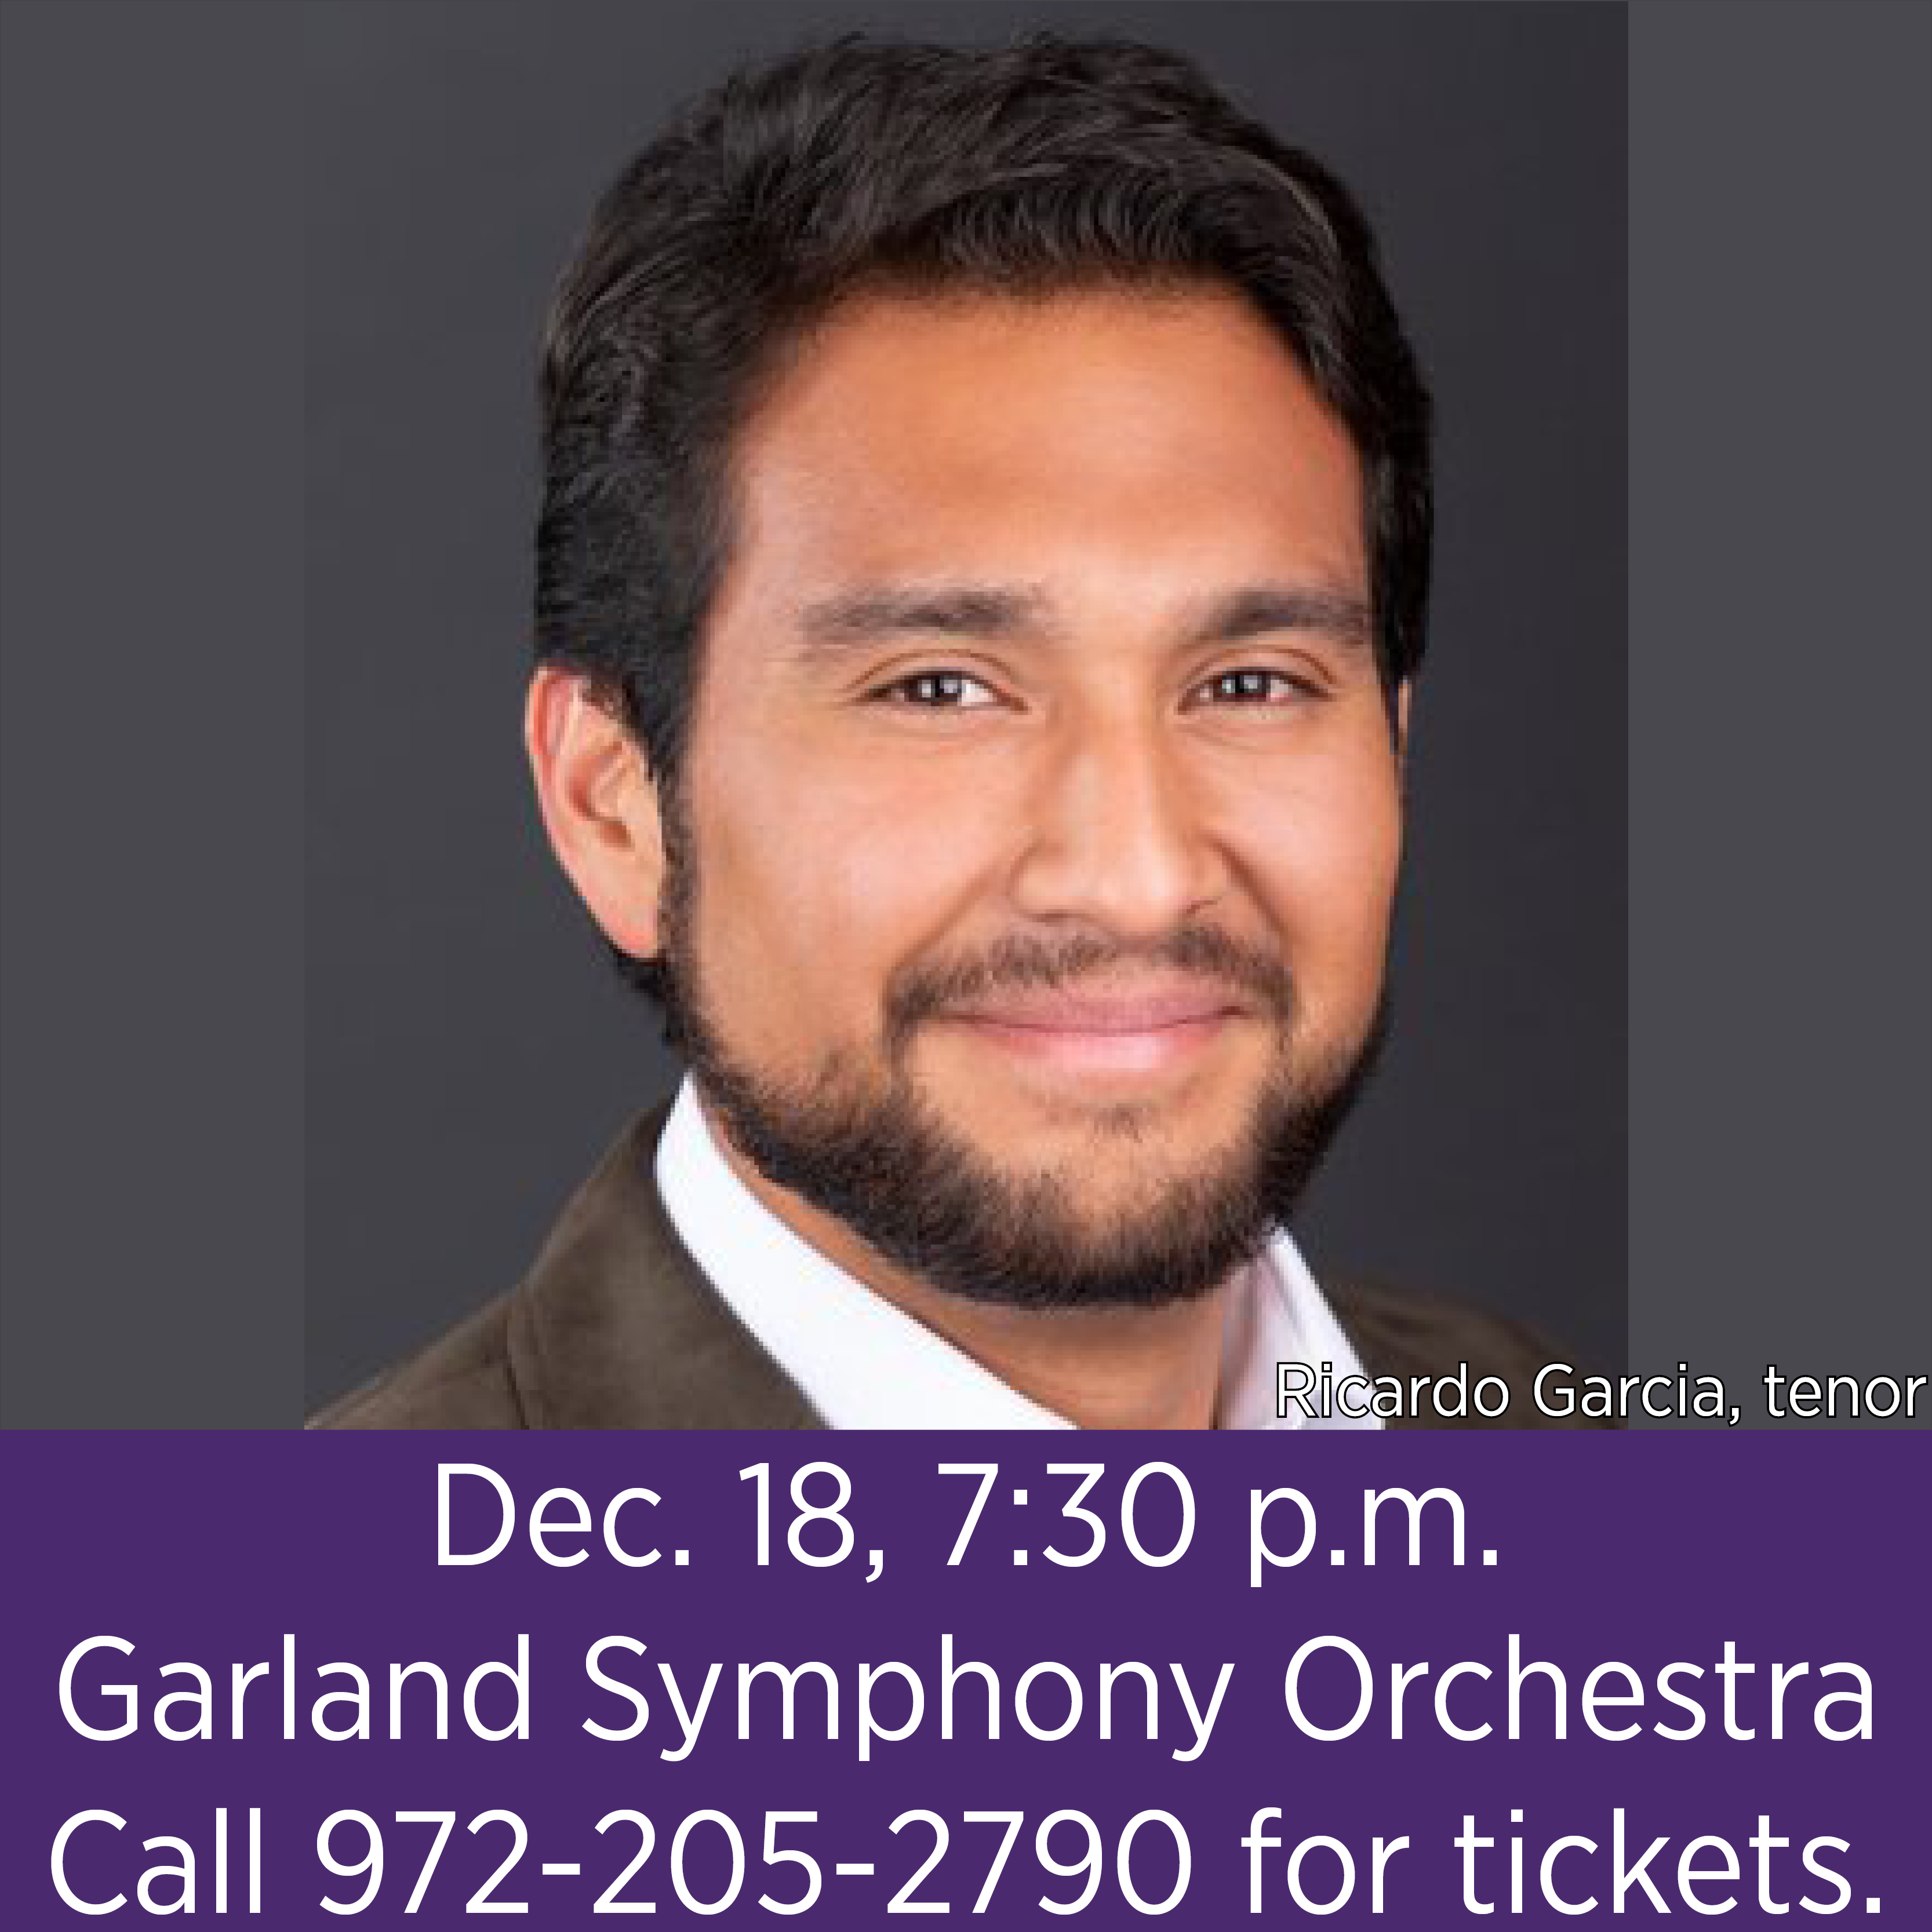 Garland Symphony Orchestra